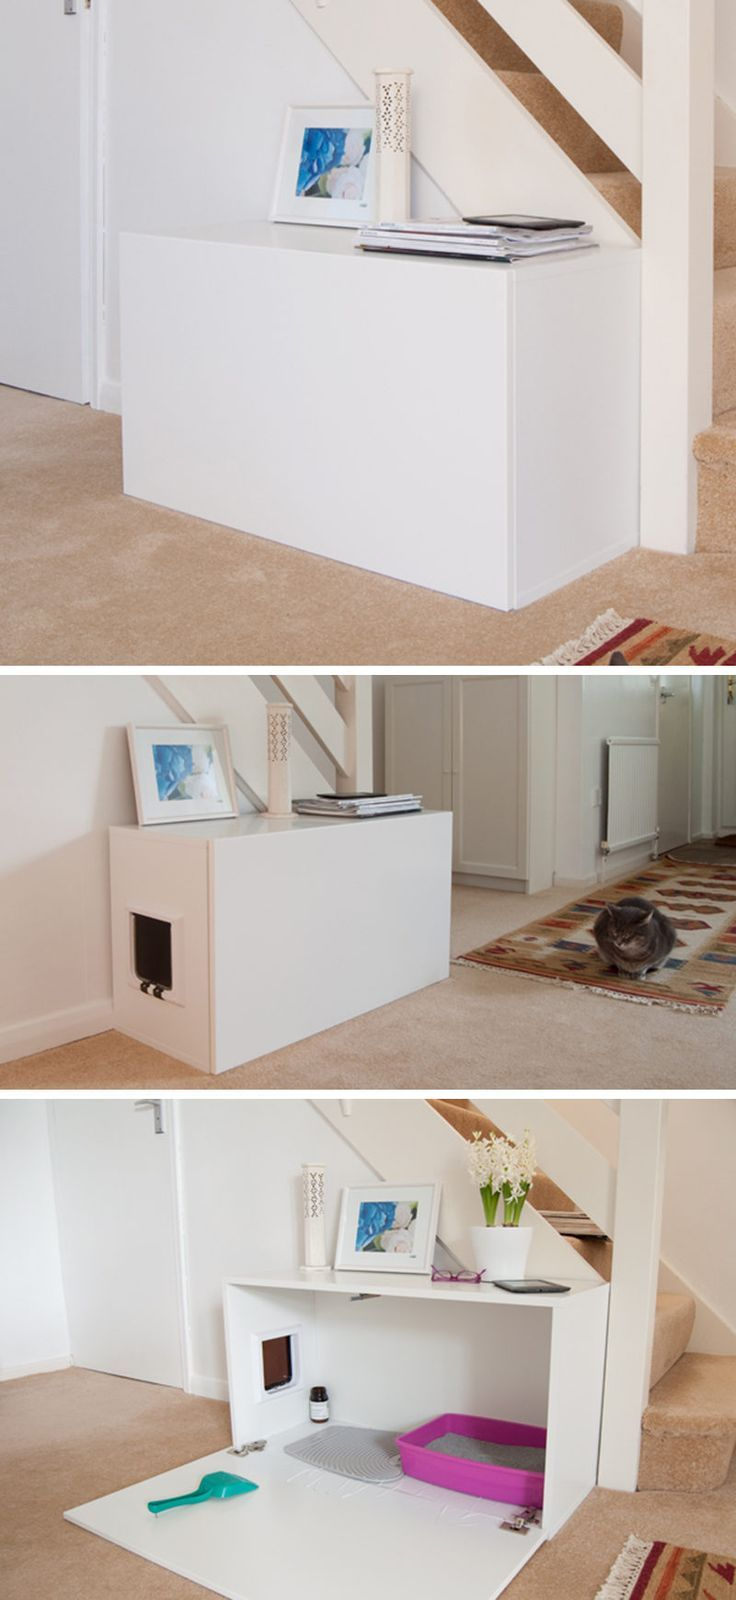 10 Ideas For Hiding Your Cats Litter Box // Turn an Ikea cabinet into a contemporary hiding place for the litter box.